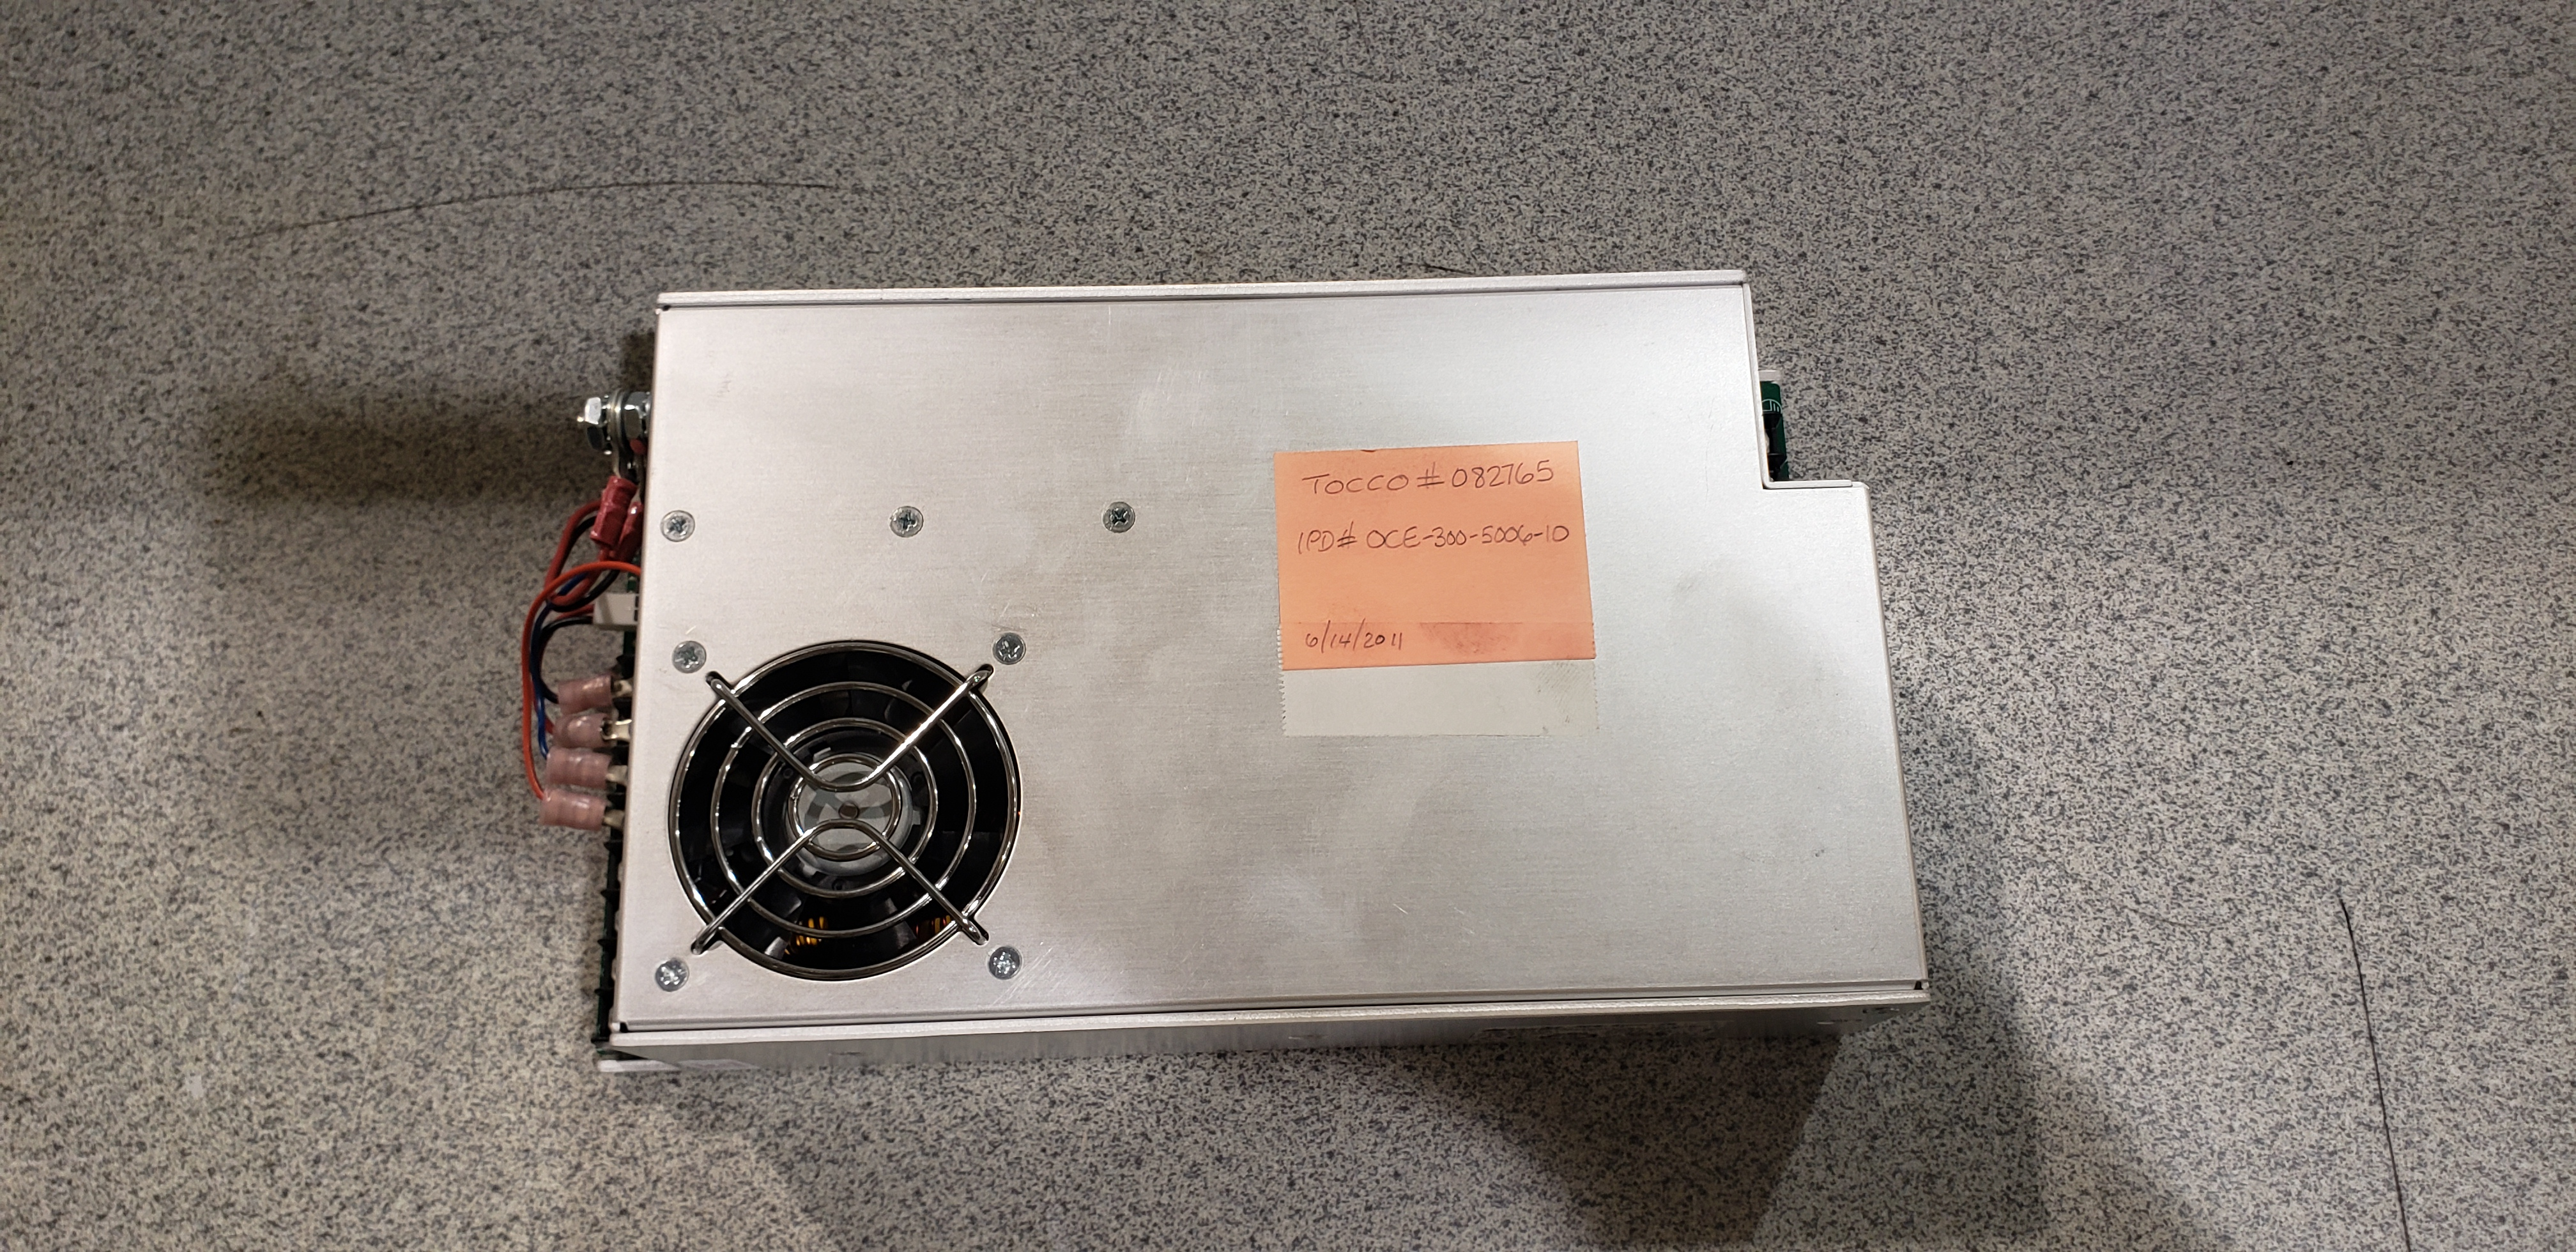 Integrated Power Design Power Supply CE-300-506-IO